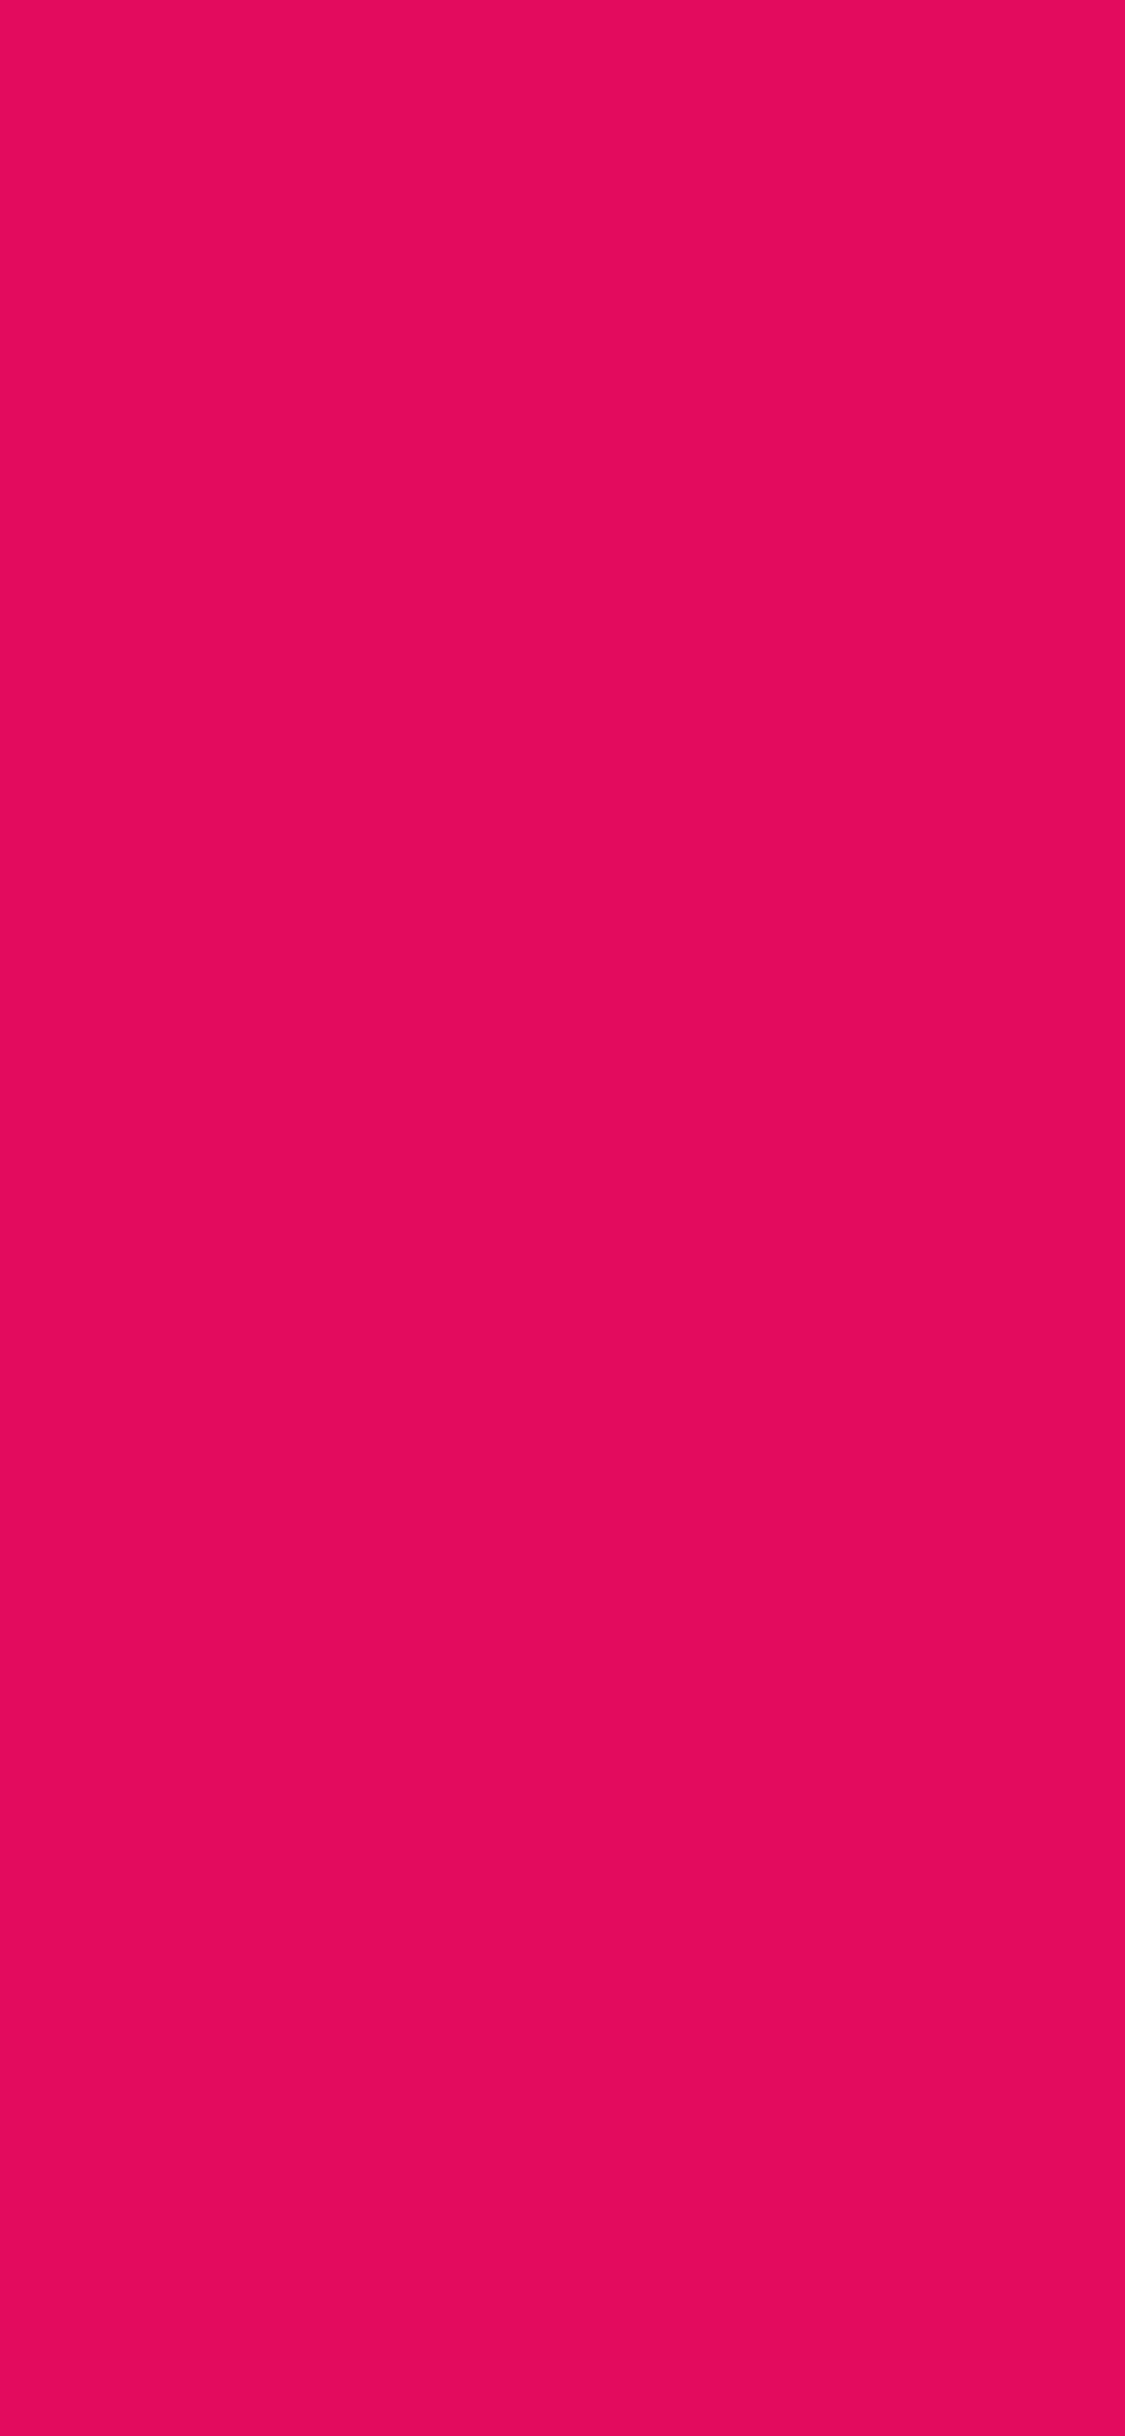 1125x2436 Raspberry Solid Color Background